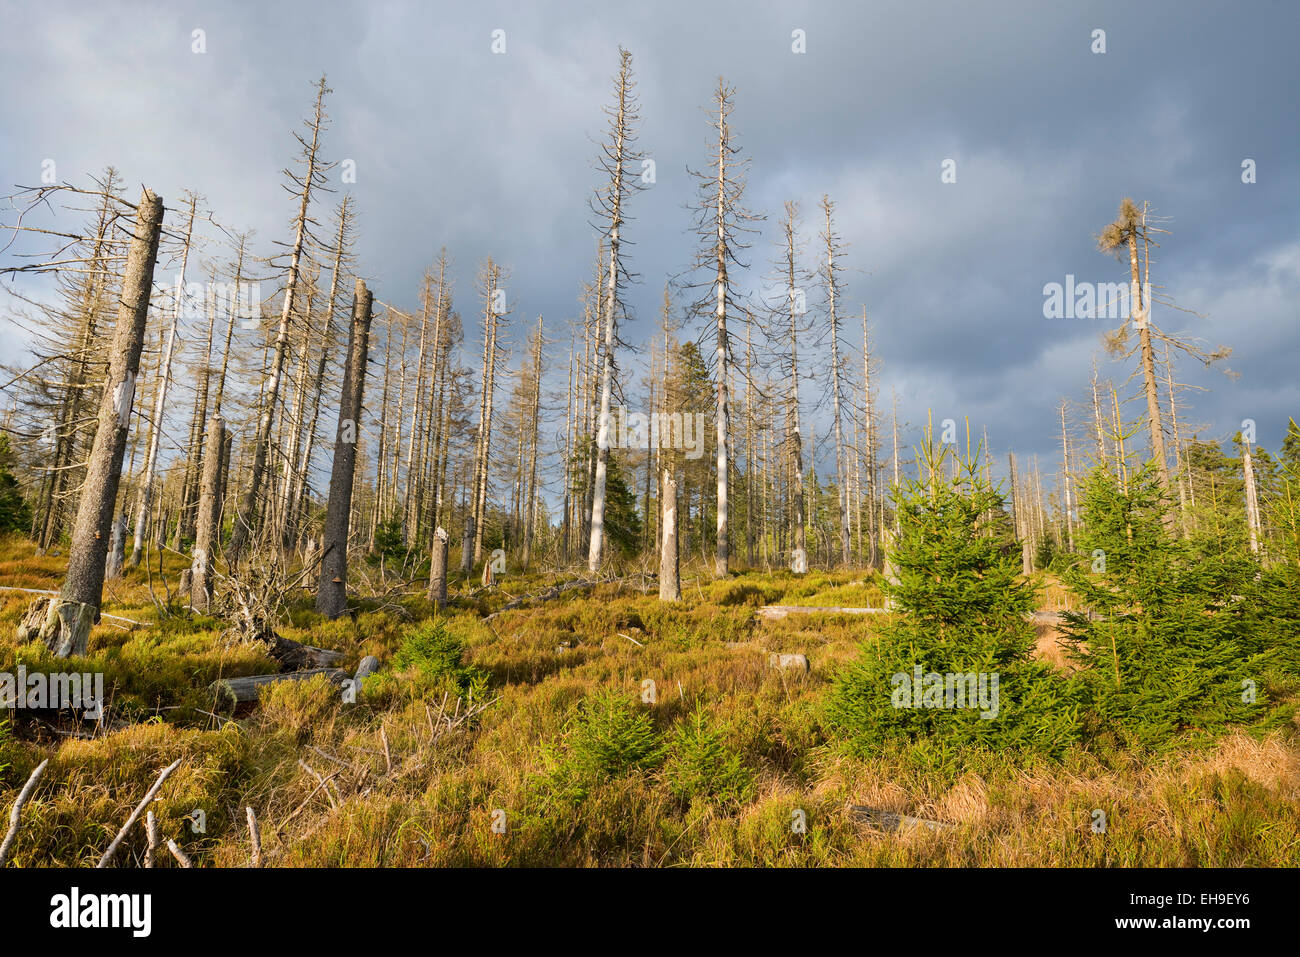 Forest regeneration through natural rejuvenation in the Harz National Park, Lower Saxony, Germany - Stock Image